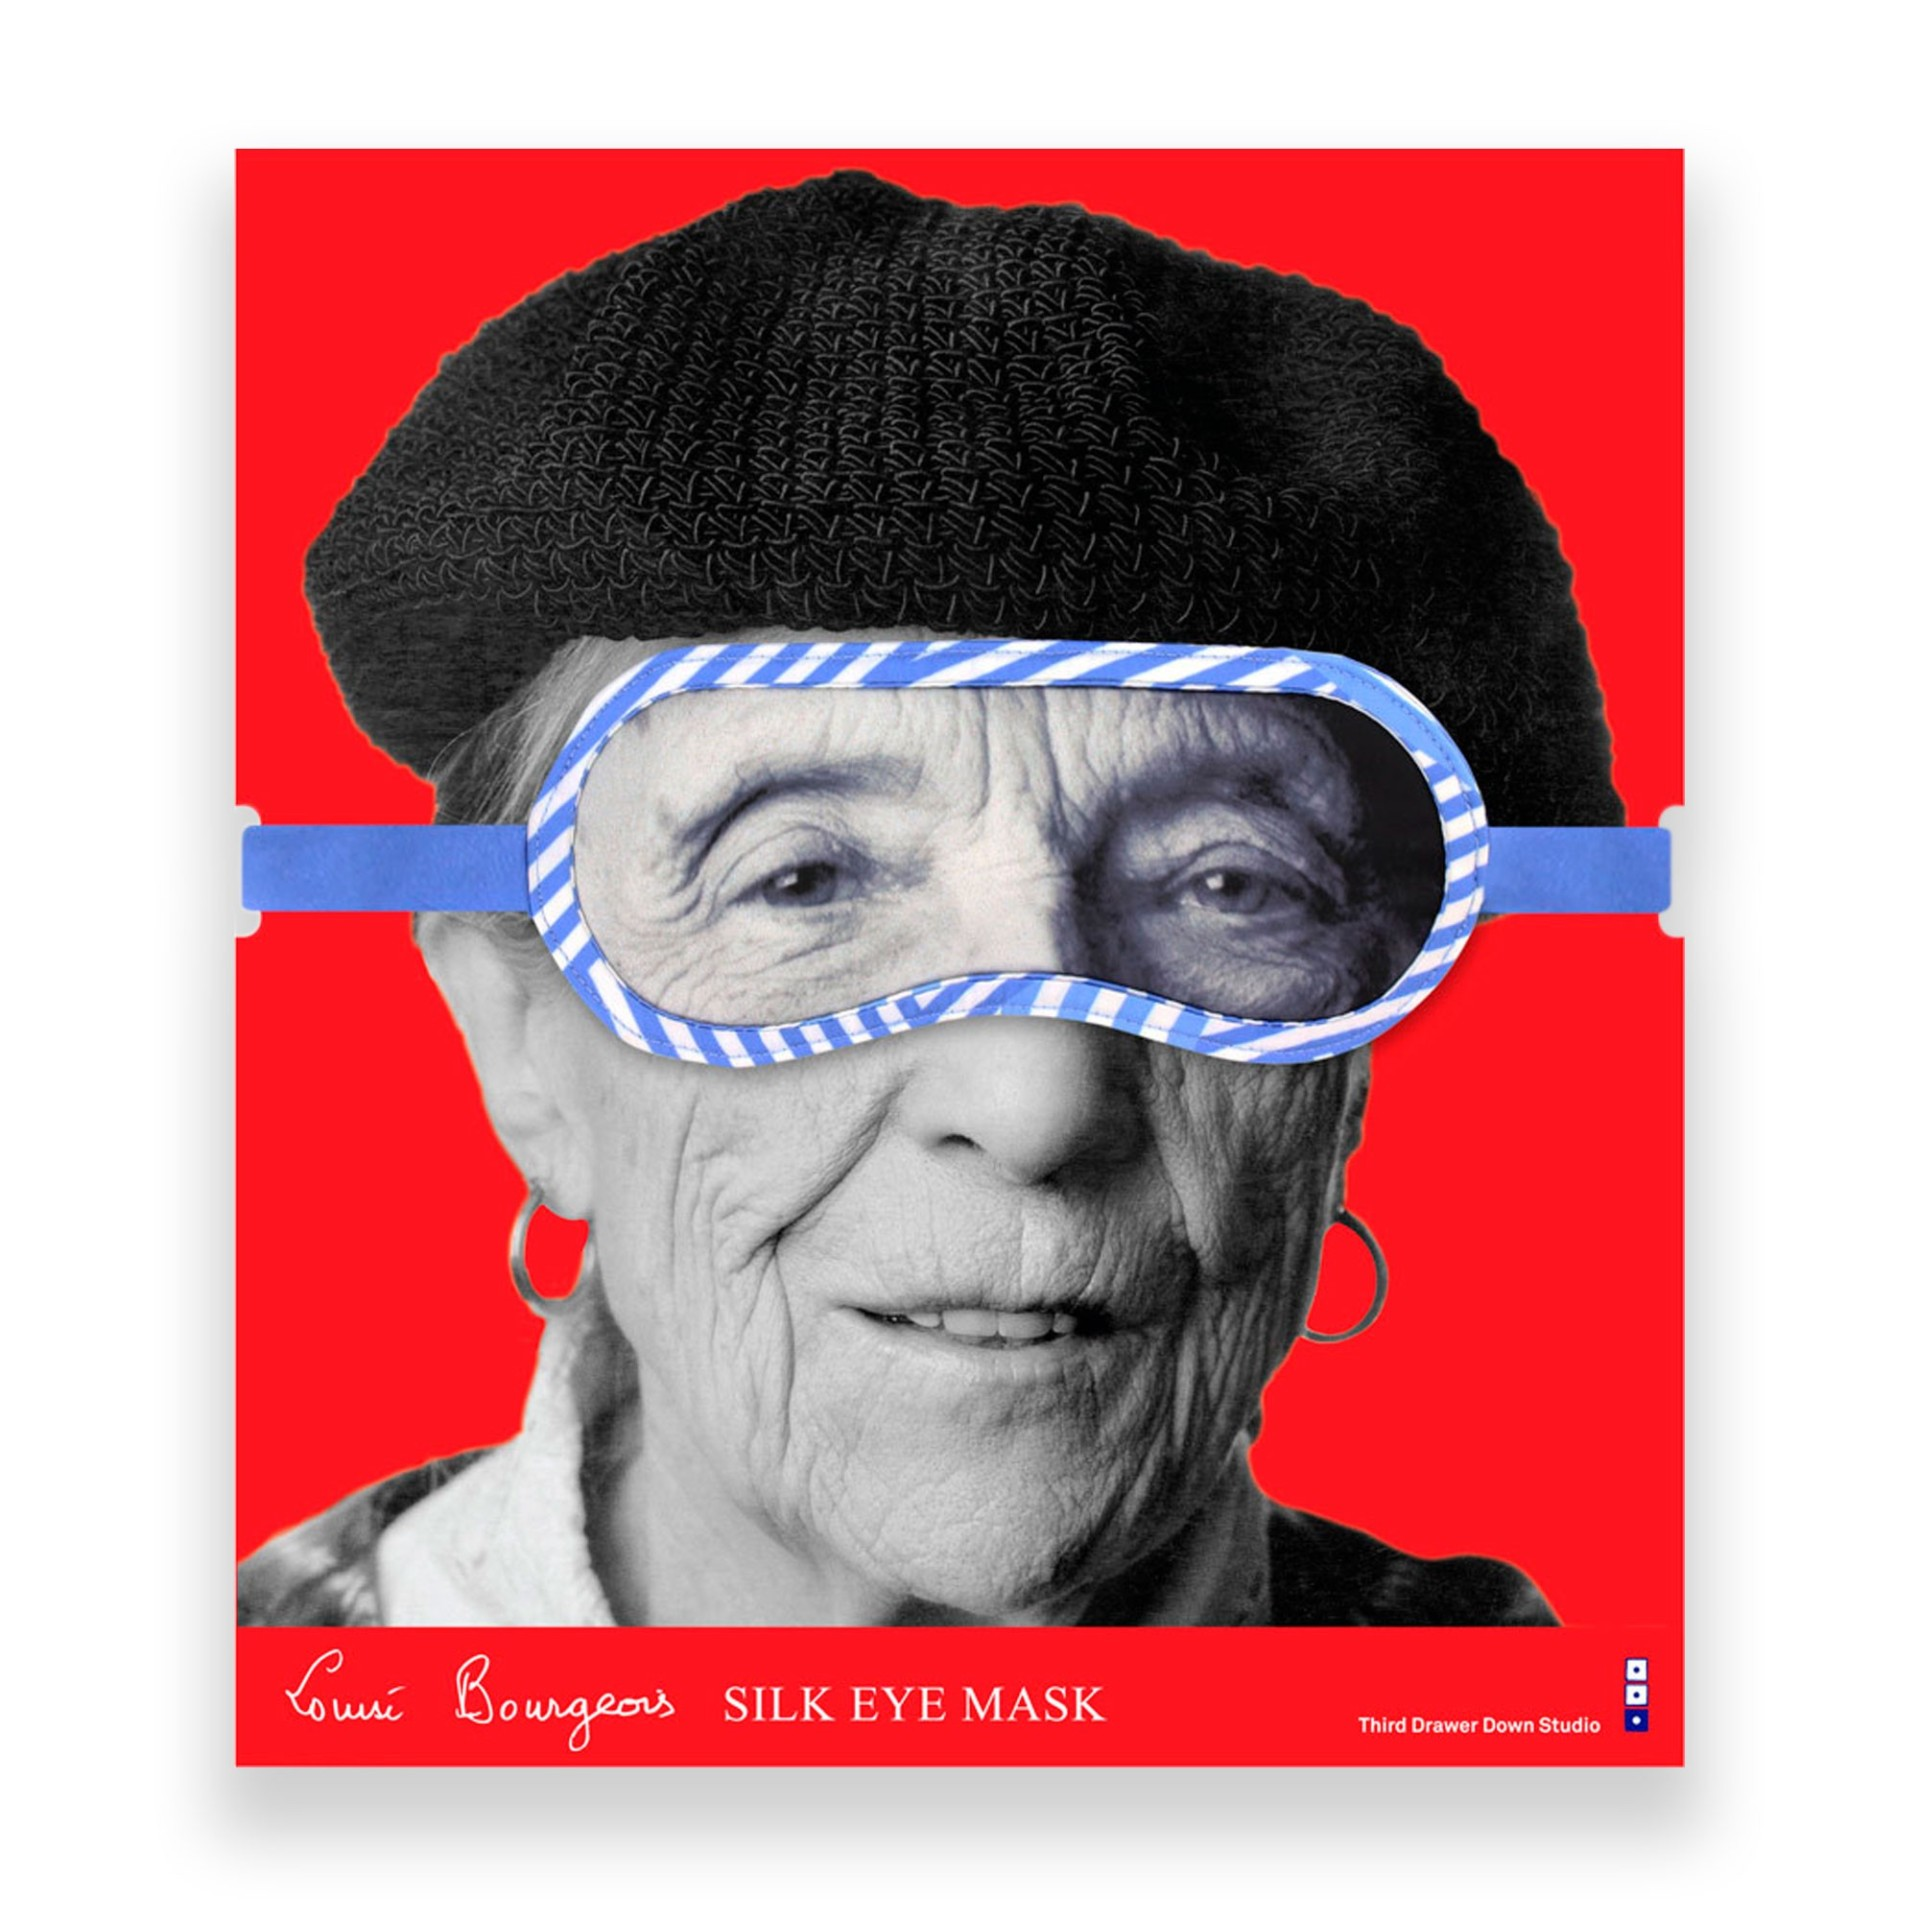 Ser-artista-segun-Louise-Bourgeois-cover